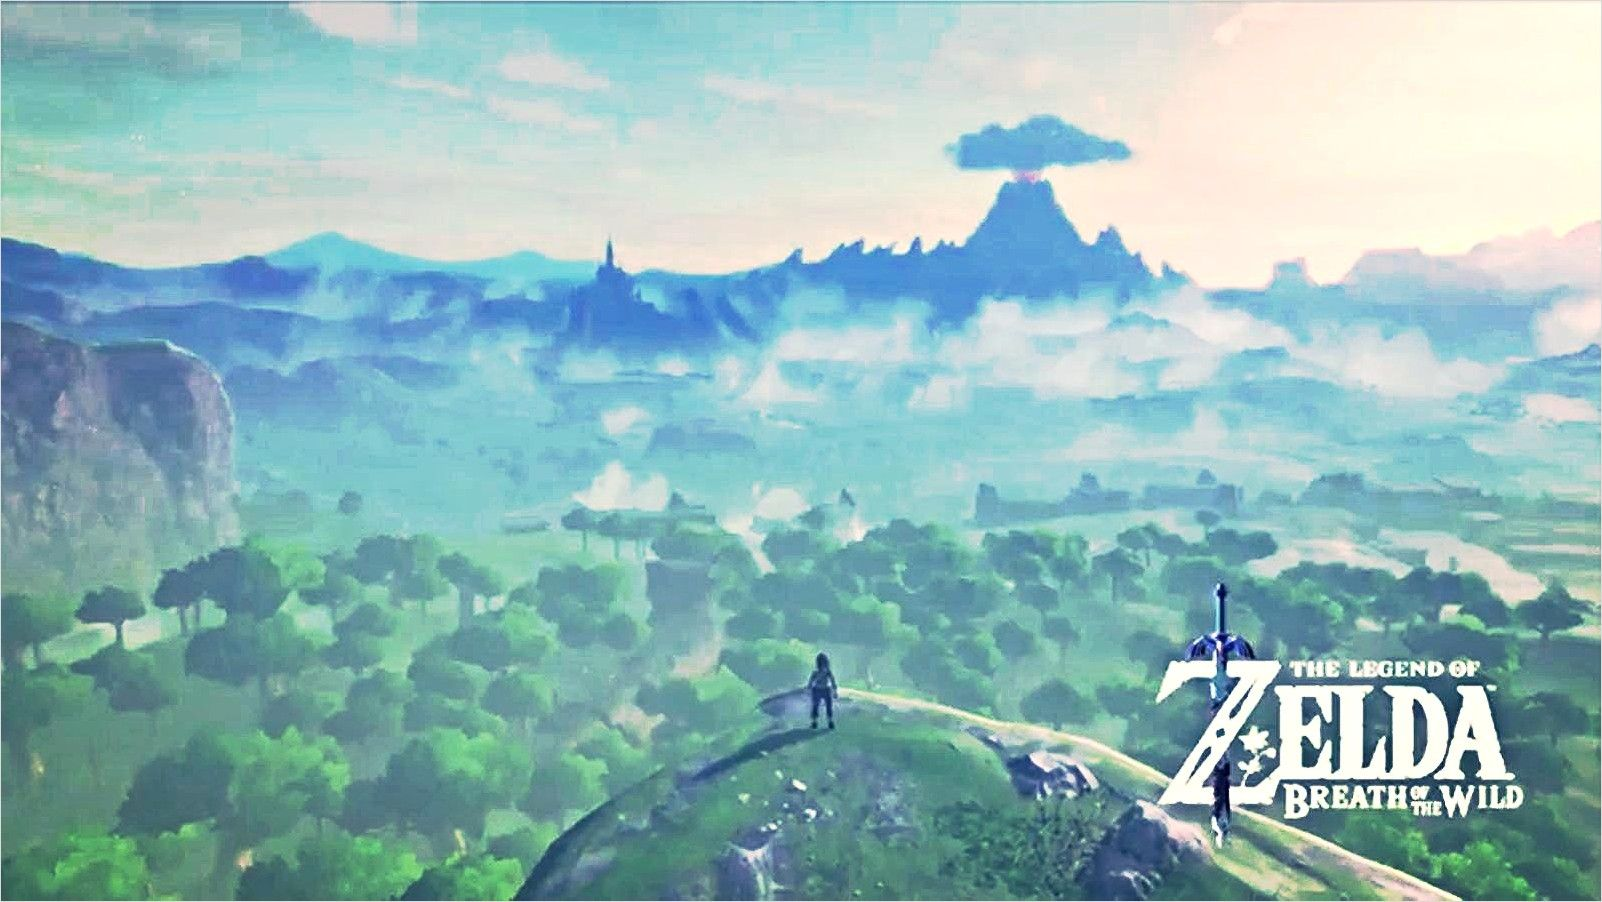 4k Zelda Breath Of The Wild Wallpaper In 2020 Breath Of The Wild Legend Of Zelda Background Images